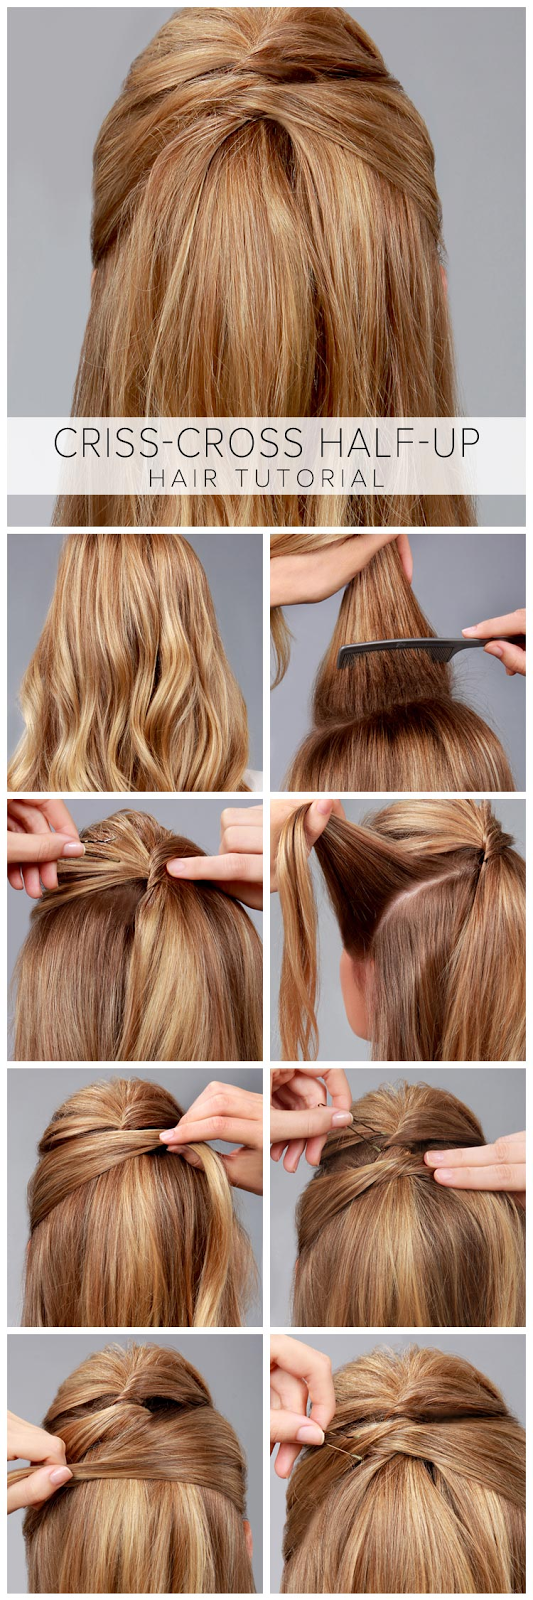 Crisscross halfup hair tutorial accesorios pinterest